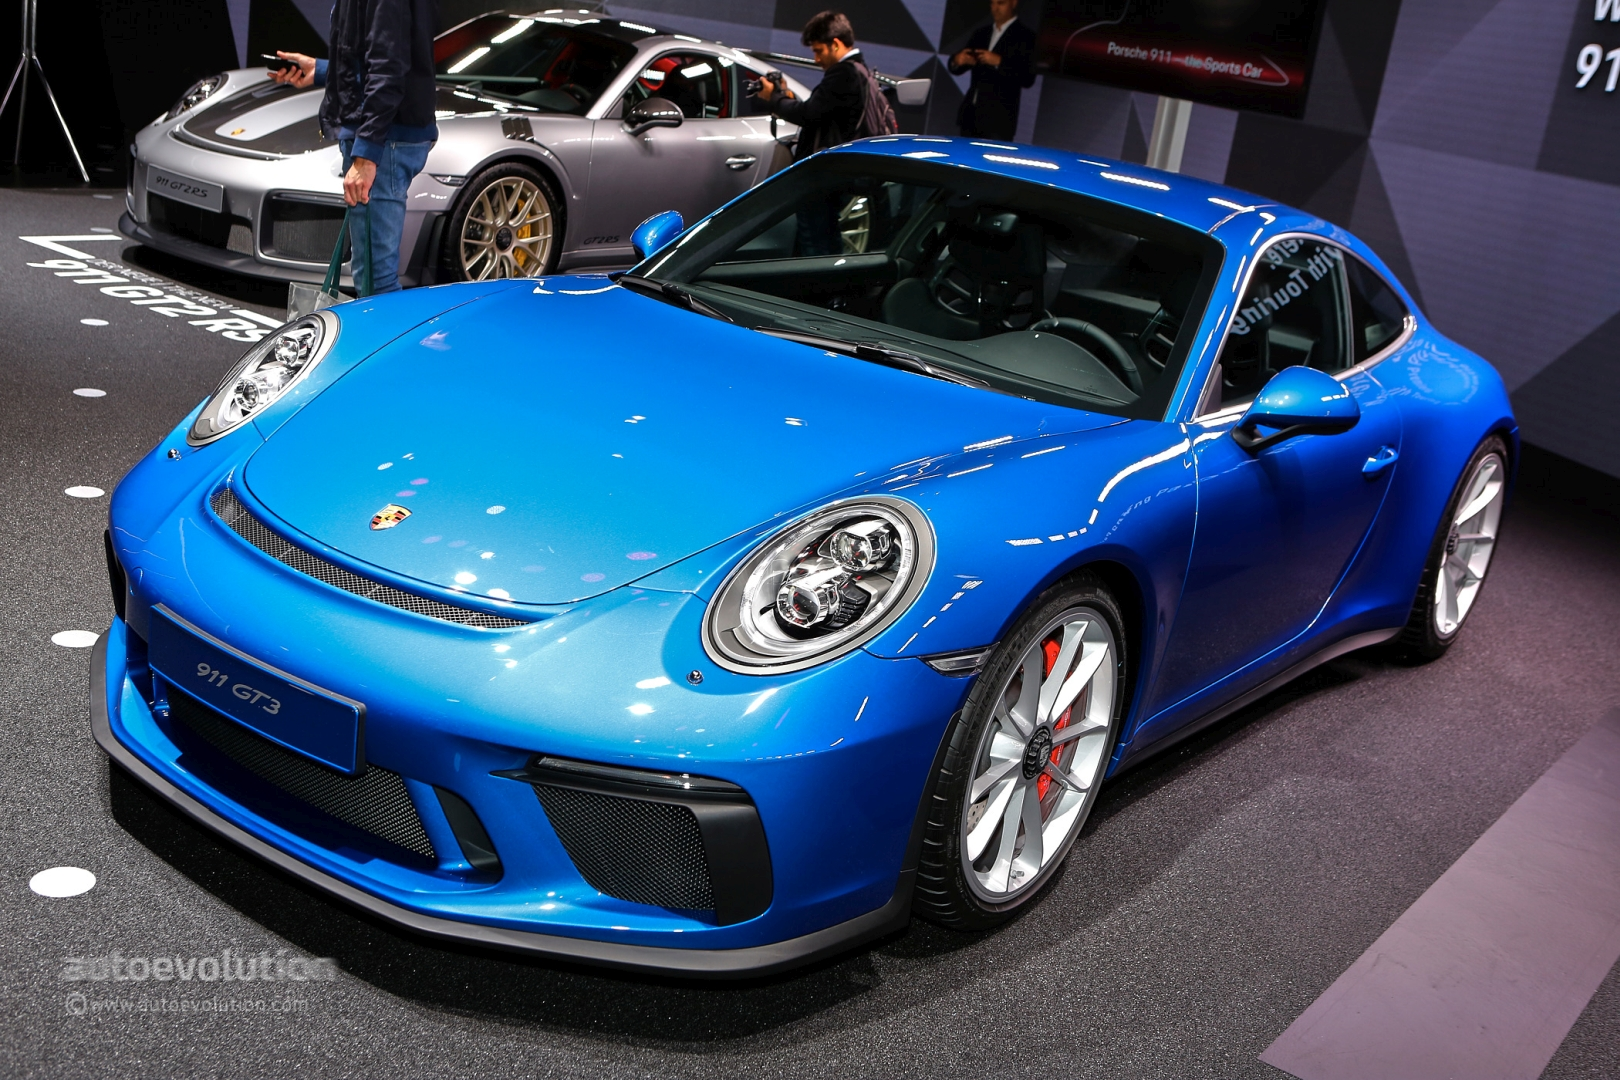 new porsche 911 gt3 touring package is a no cost option 911 r clone autoevolution. Black Bedroom Furniture Sets. Home Design Ideas